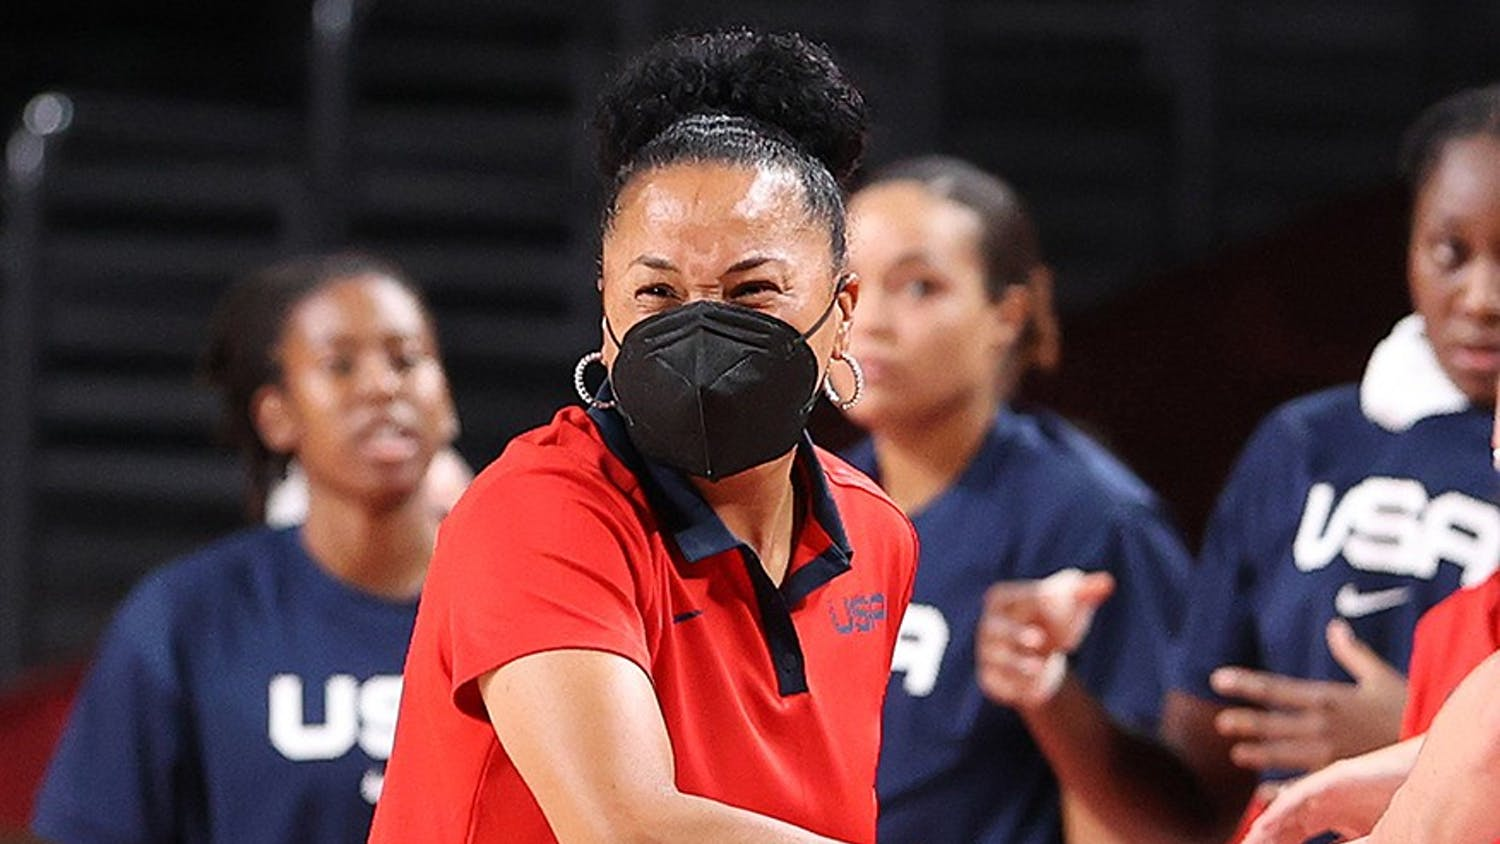 Head coach Dawn Staley of Team United States reacts against France during the first half of a Women's Basketball Preliminary Round Group B game on day 10 of the Tokyo 2020 Olympic Games at Saitama Super Arena on Monday, Aug. 2, 2021, in Saitama, Japan.